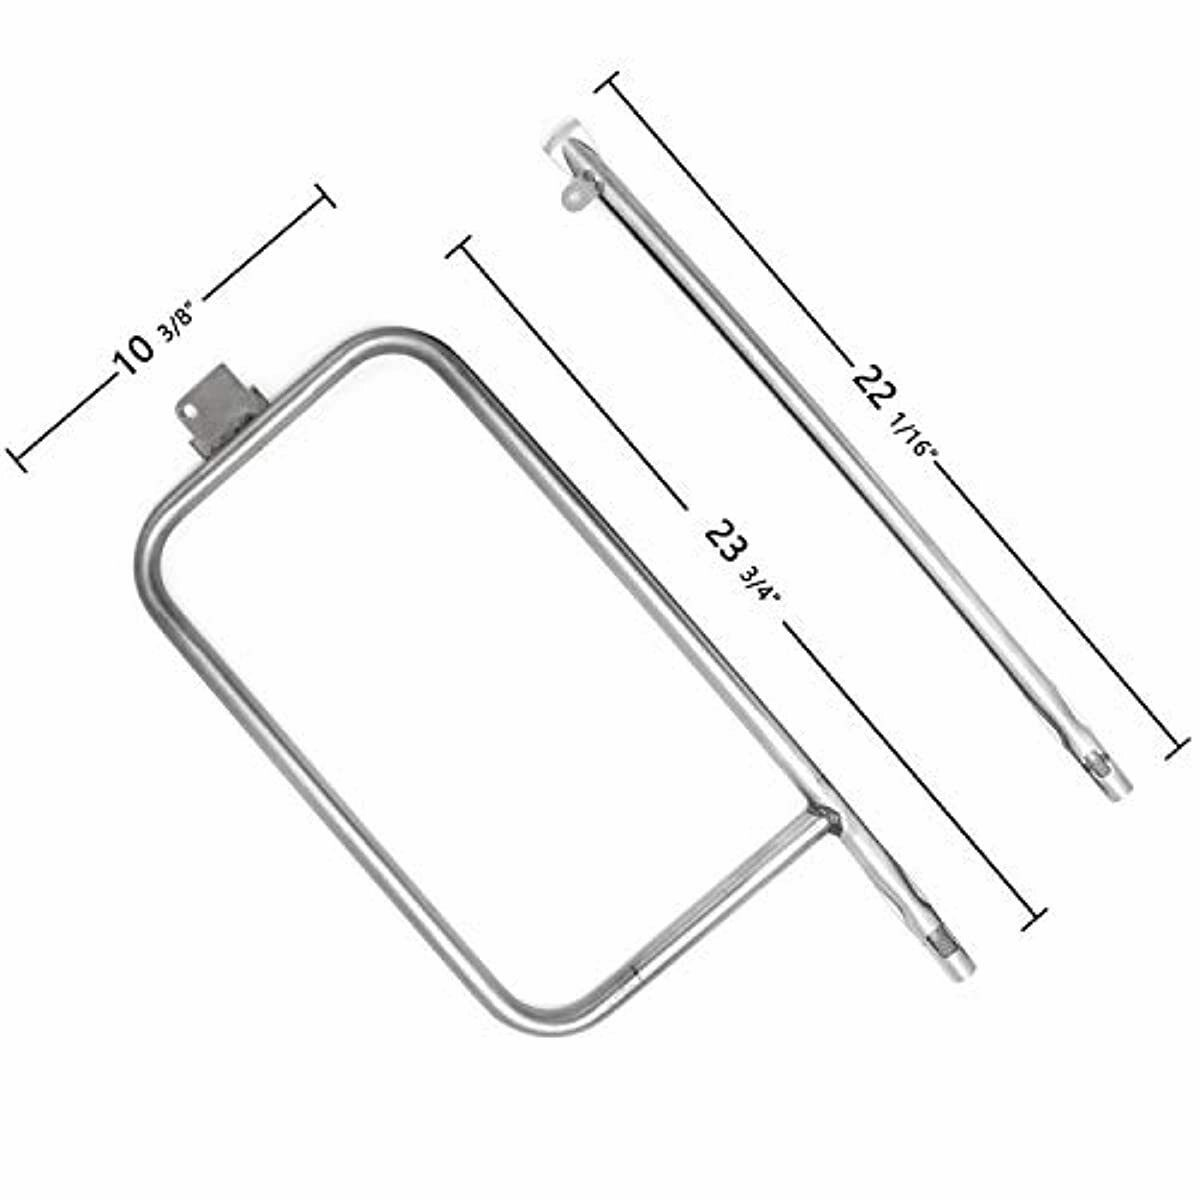 Weber Q Series Replacement Gas Grill Tube Burner Kit 60036 2 Q3200